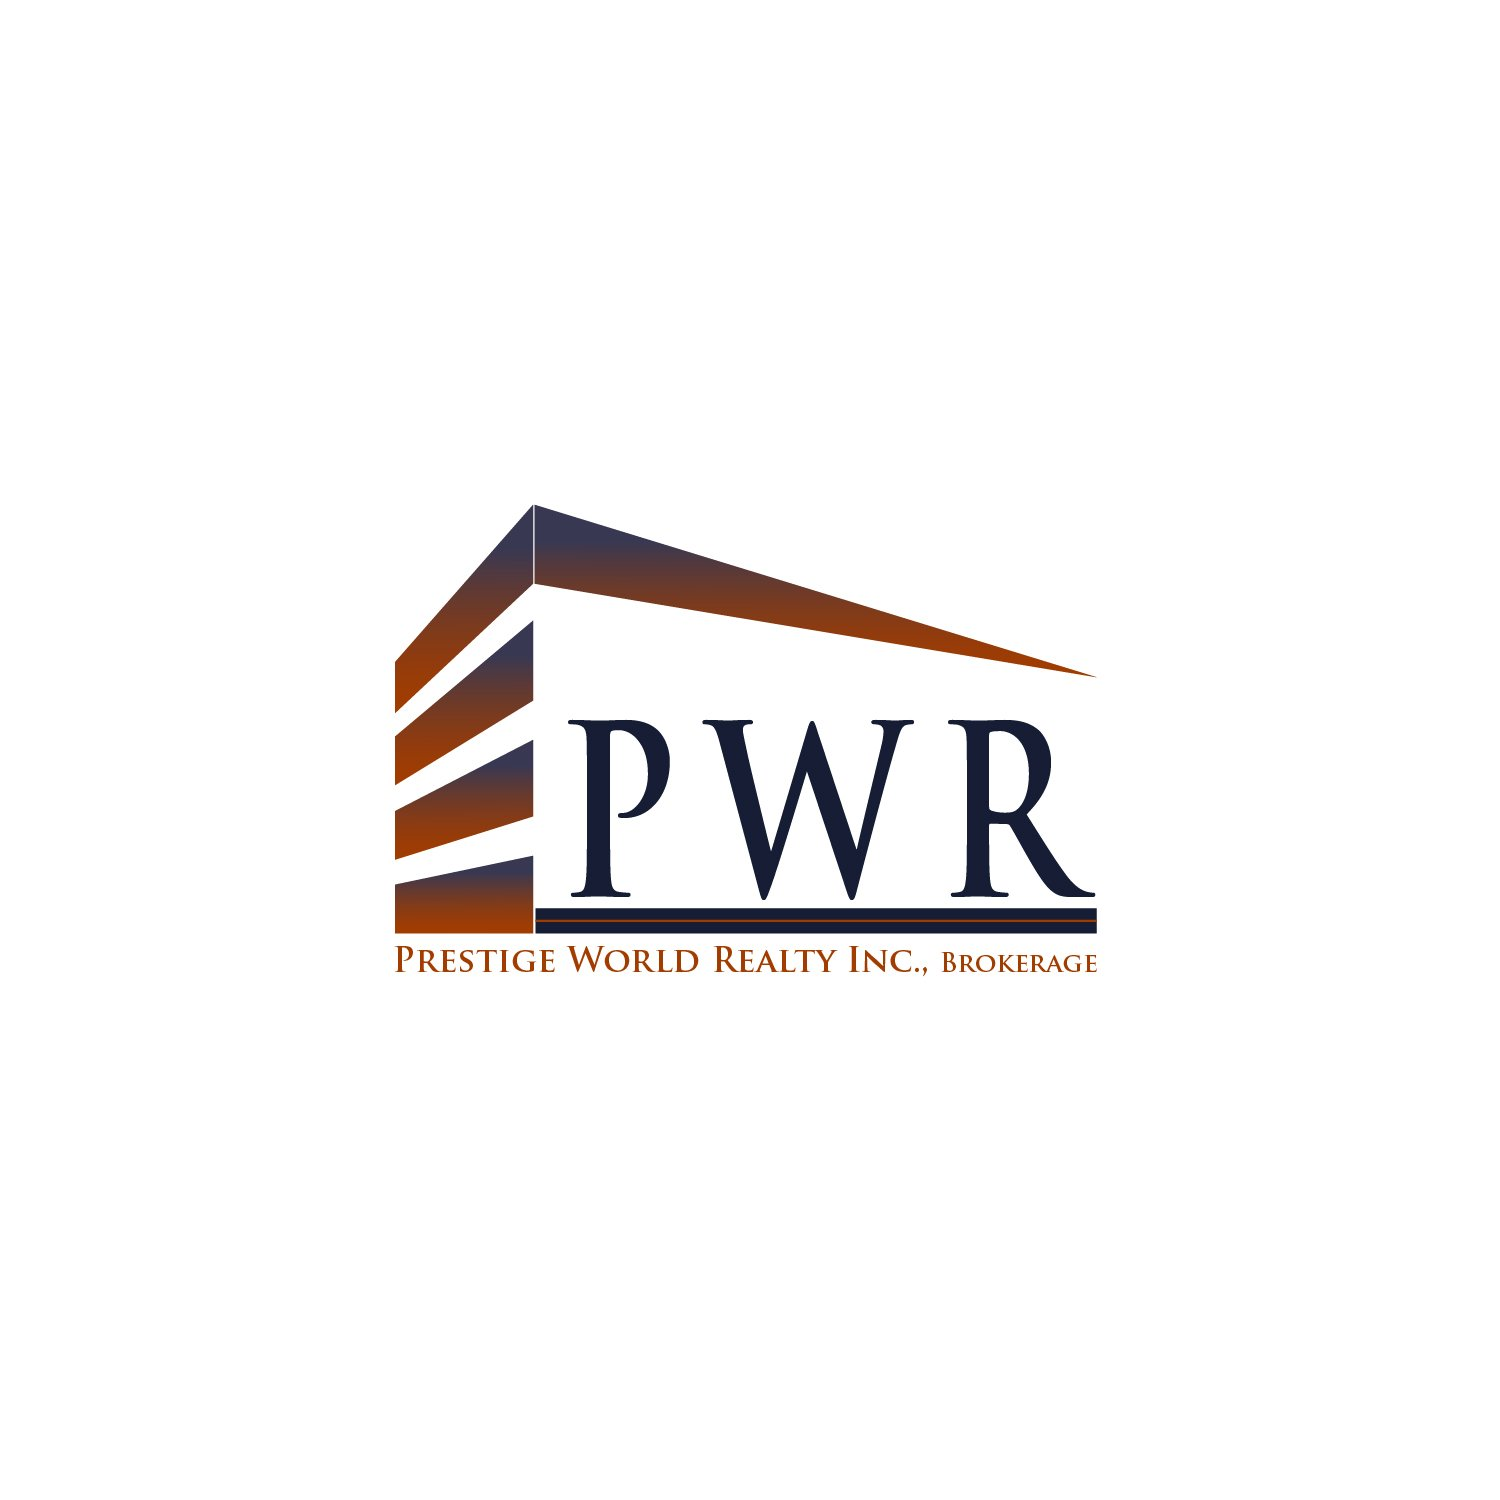 Prestige World Realty Inc.,Brokerage